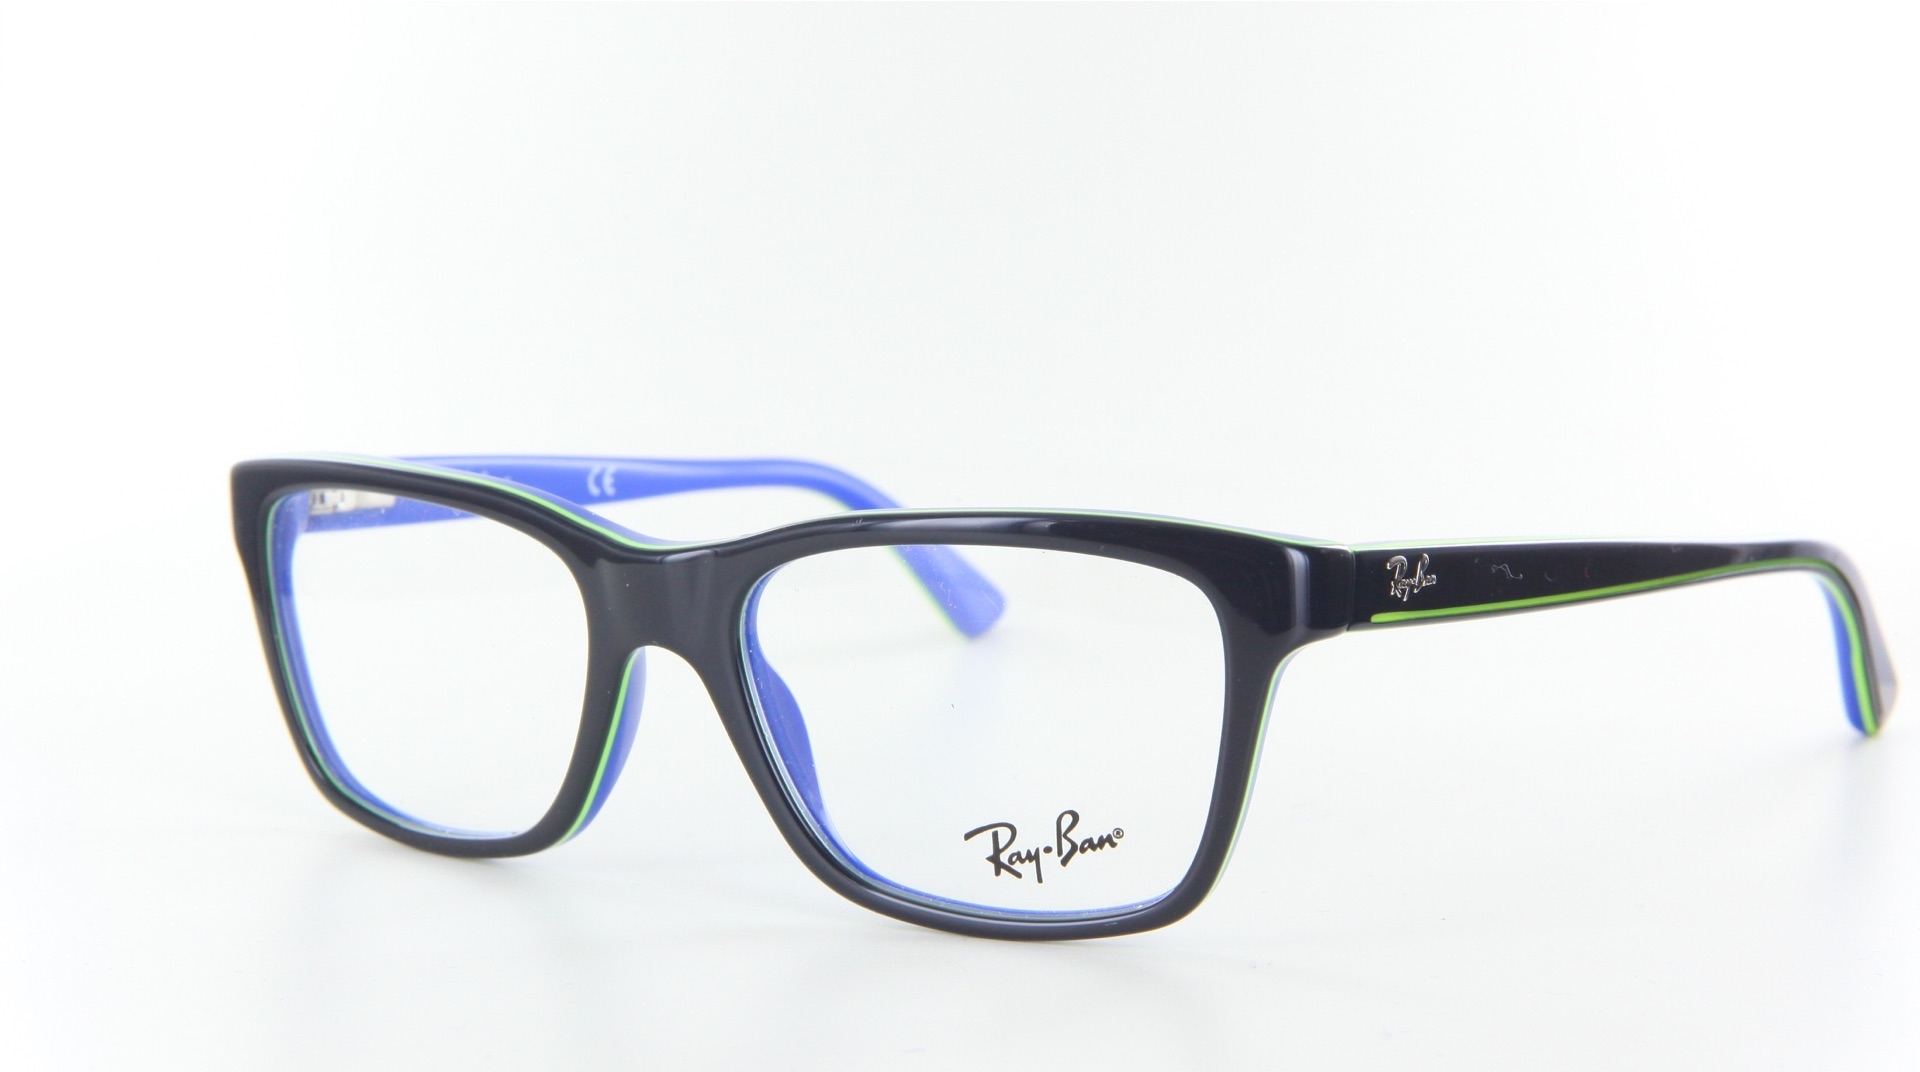 Ray-Ban - ref: 72012